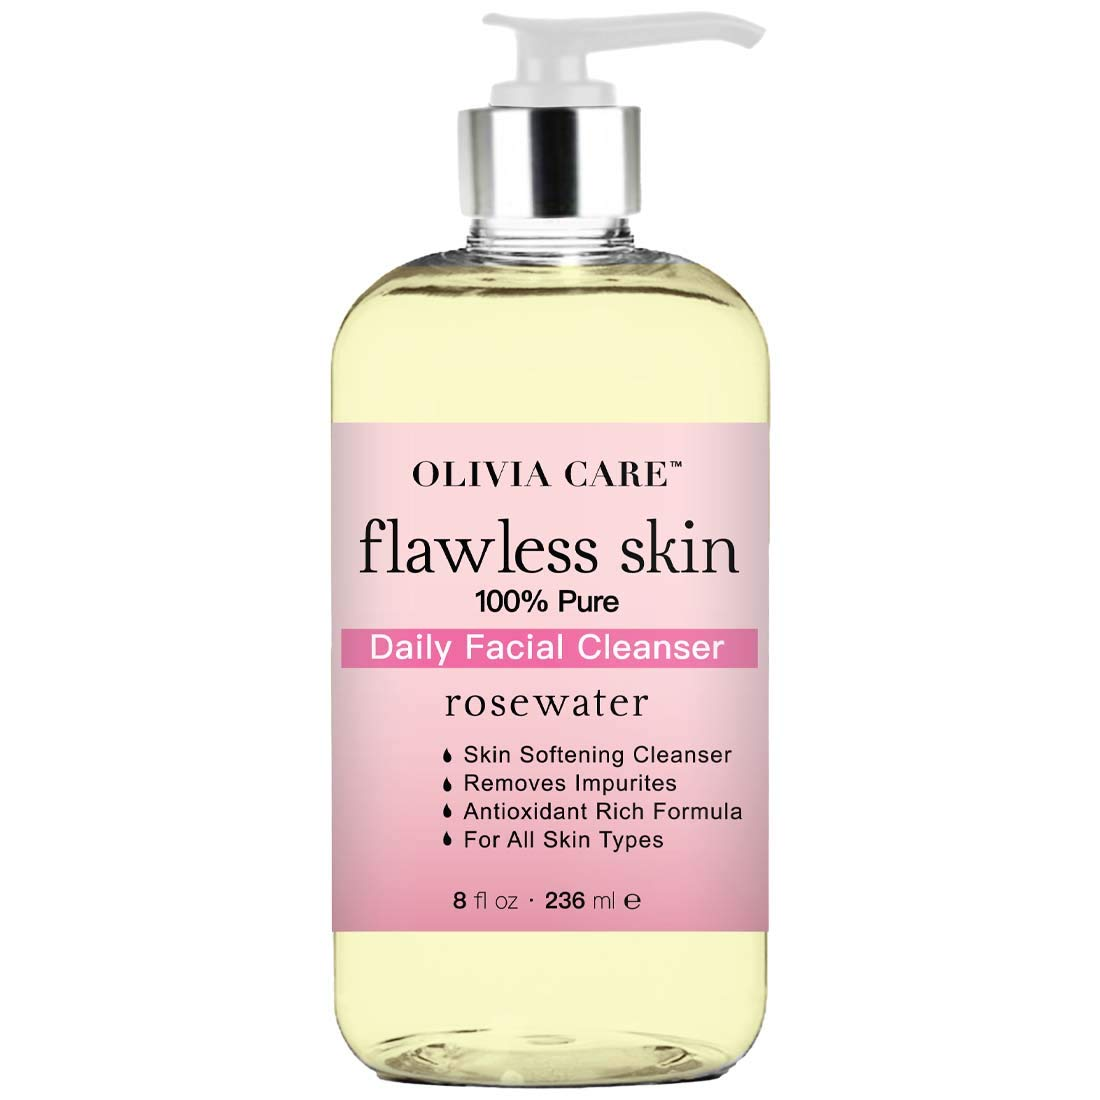 Rose Water Flawless Daily Facial Cleanser - 100% Natural & Pure. Moisturize, Hydrate, Soothes, Cleanses, Softens Skin. Antioxidant Rich Formula - For All Skin Types. Removes Impurities & Dirt - 8 OZ